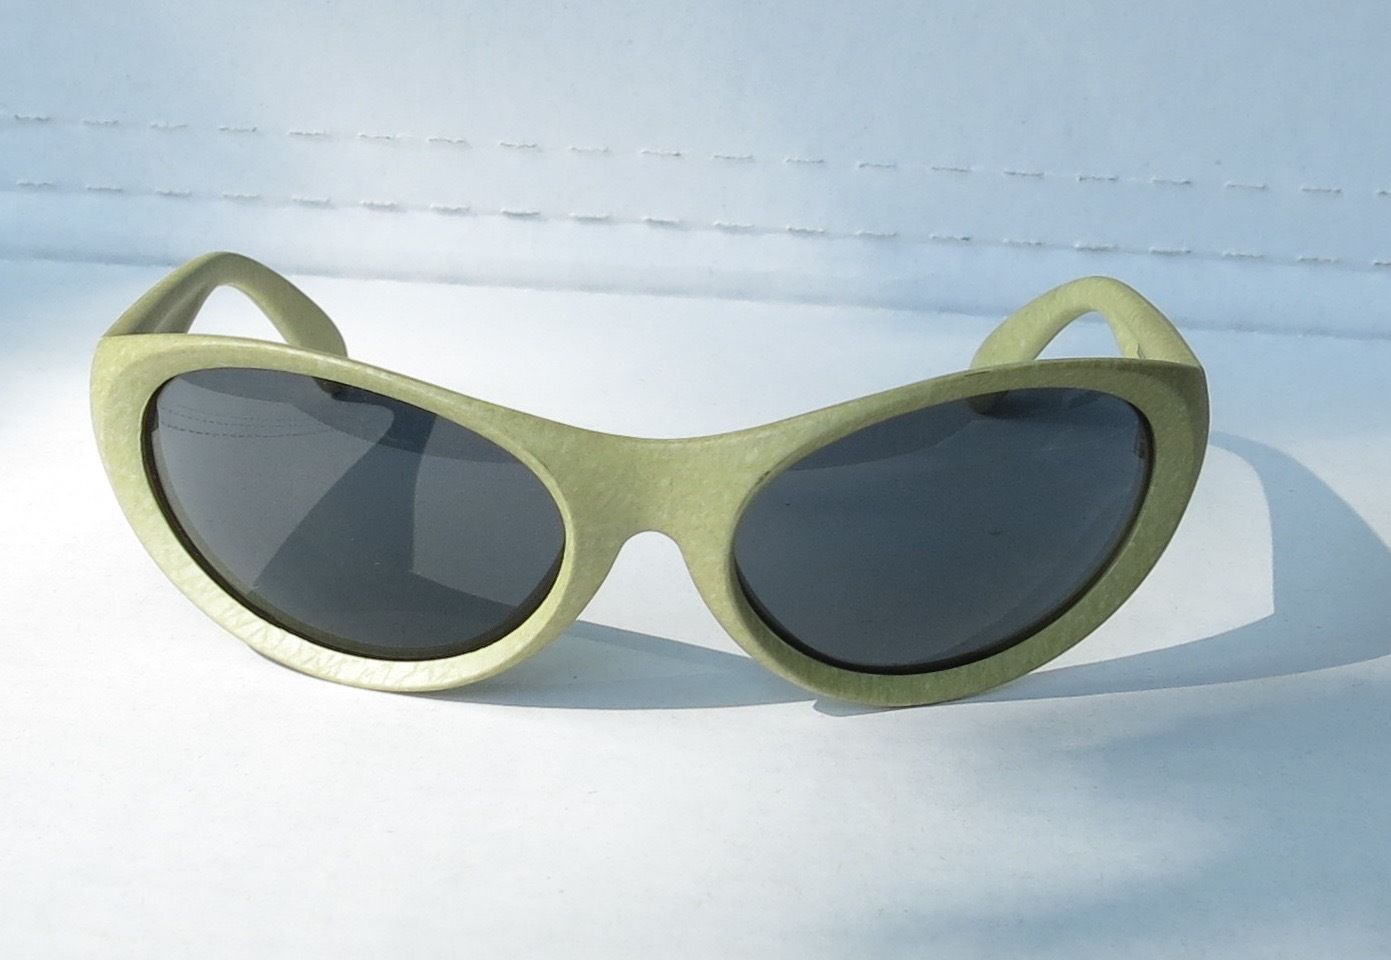 Killer Loop Sunglasses - K 0251 - Friedman & Sons